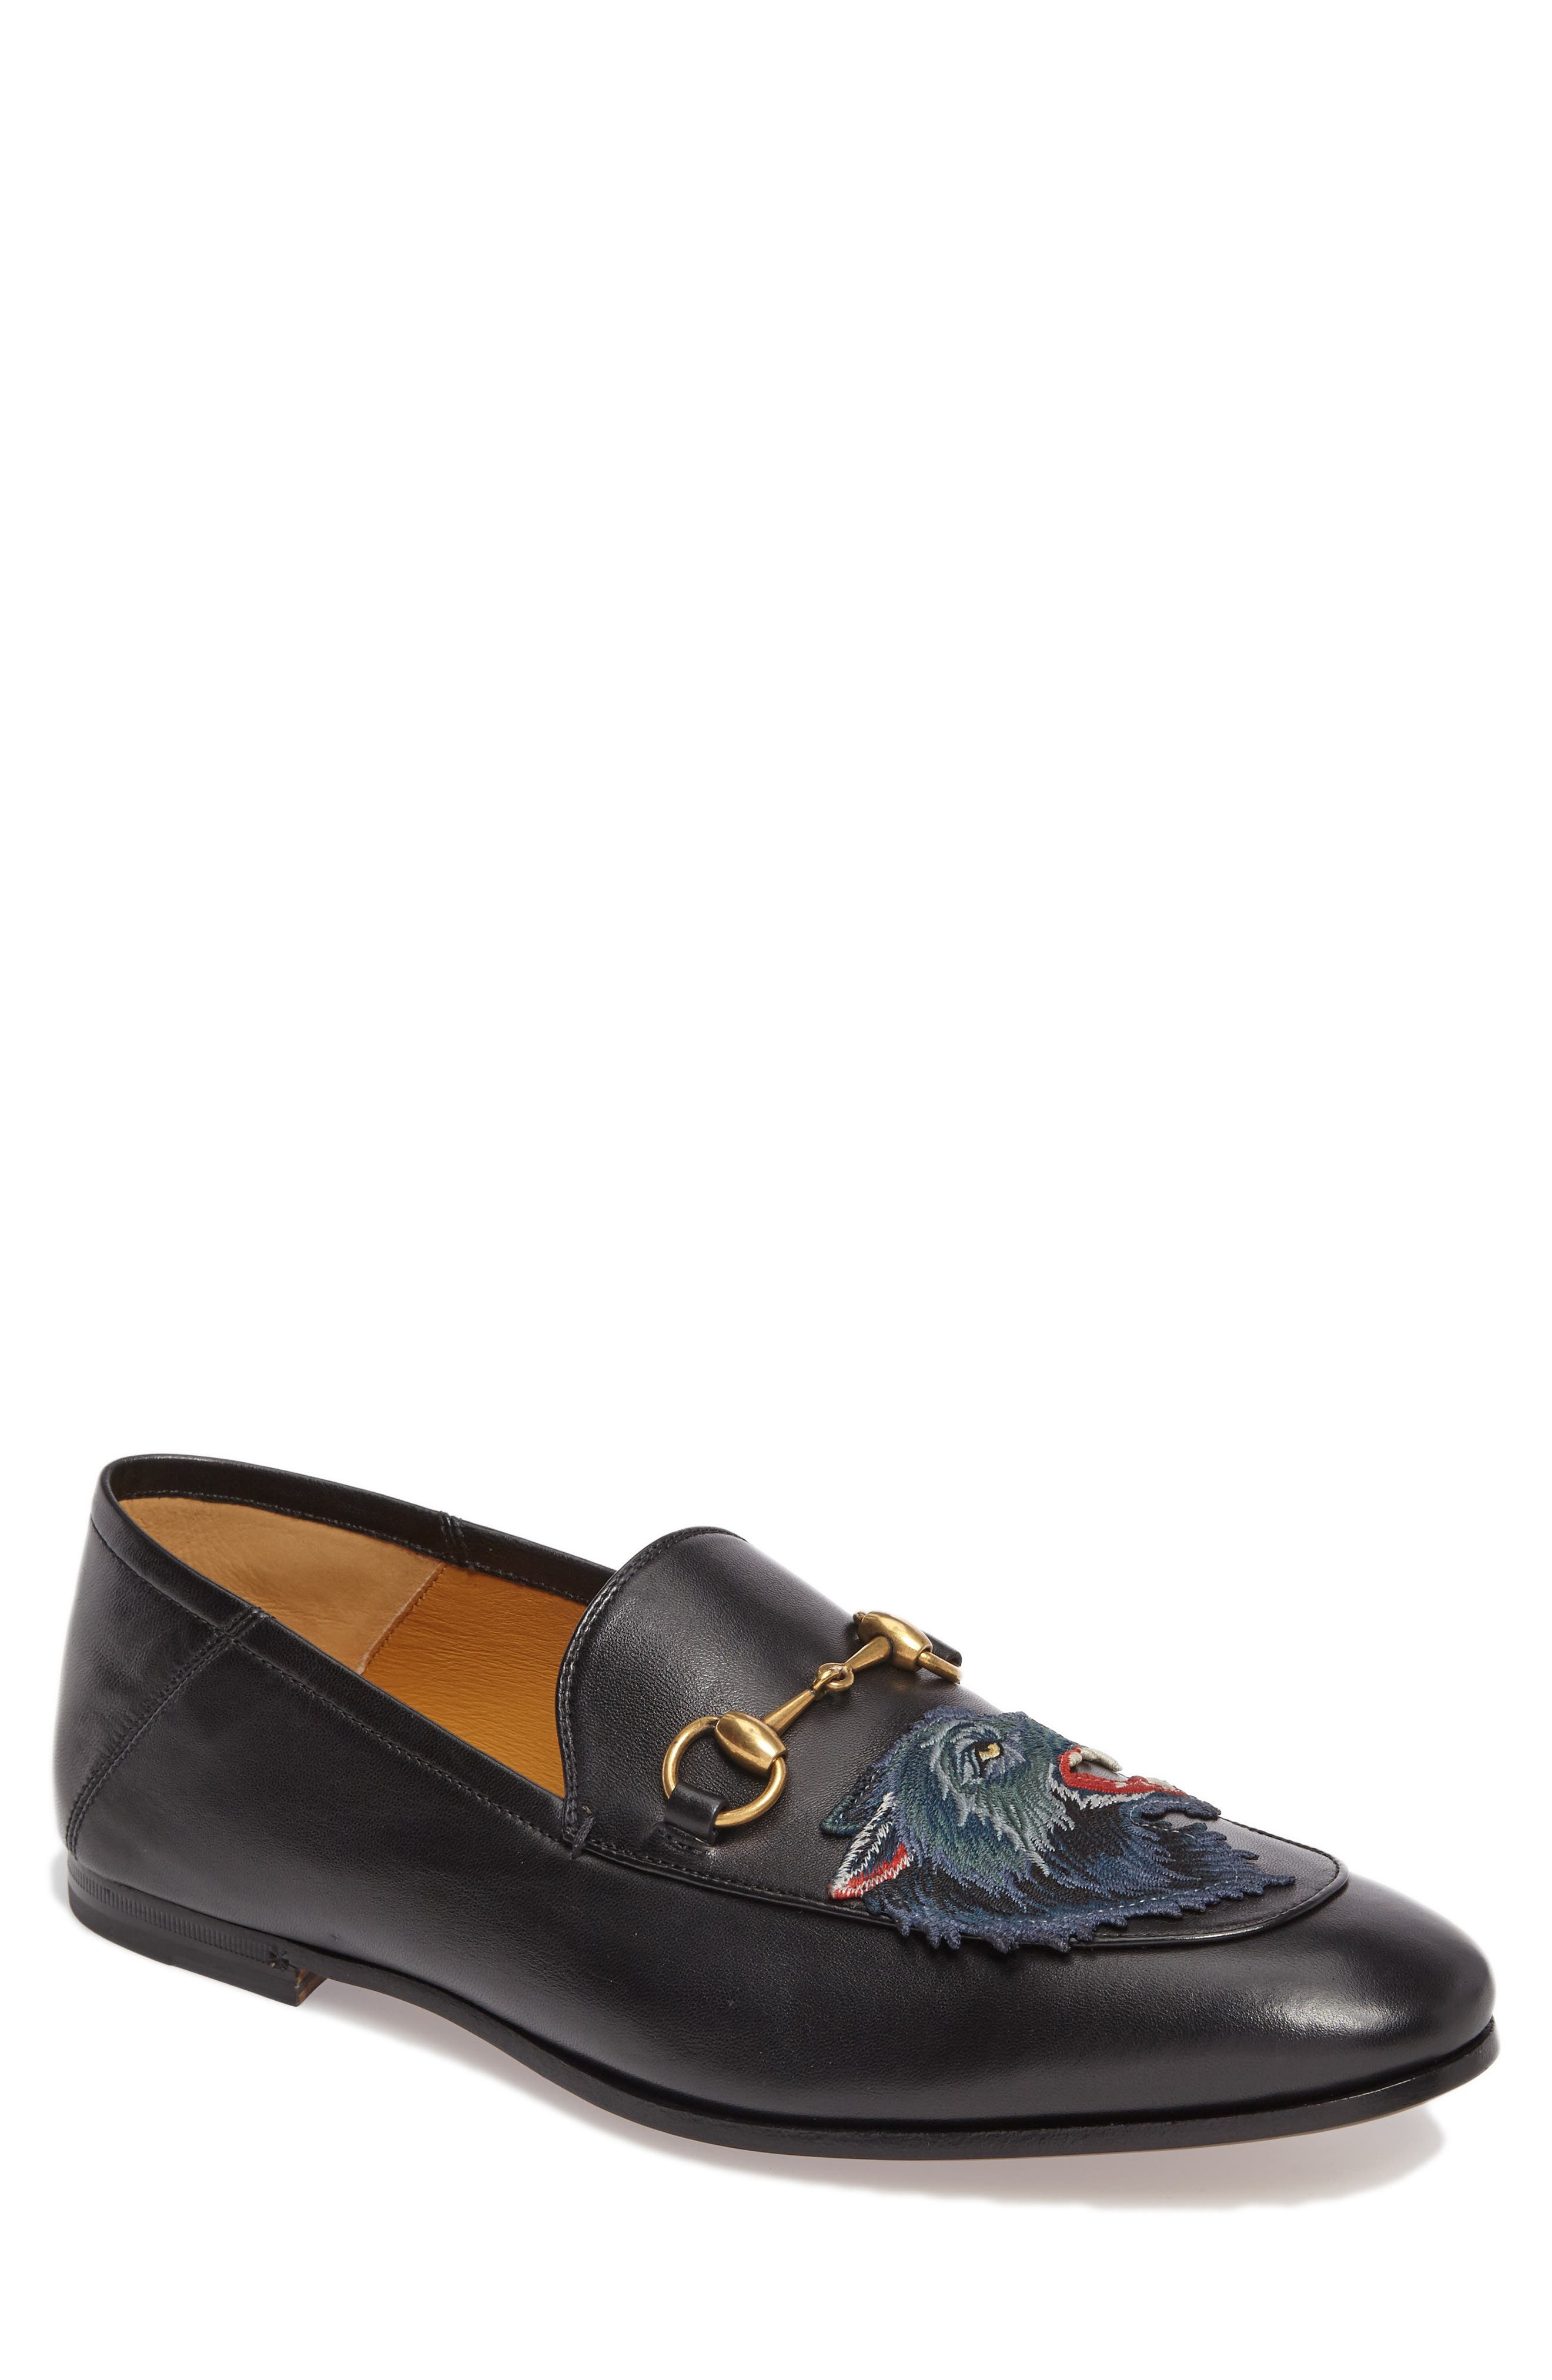 Wolf Leather Loafer,                             Main thumbnail 1, color,                             Black/ Blue